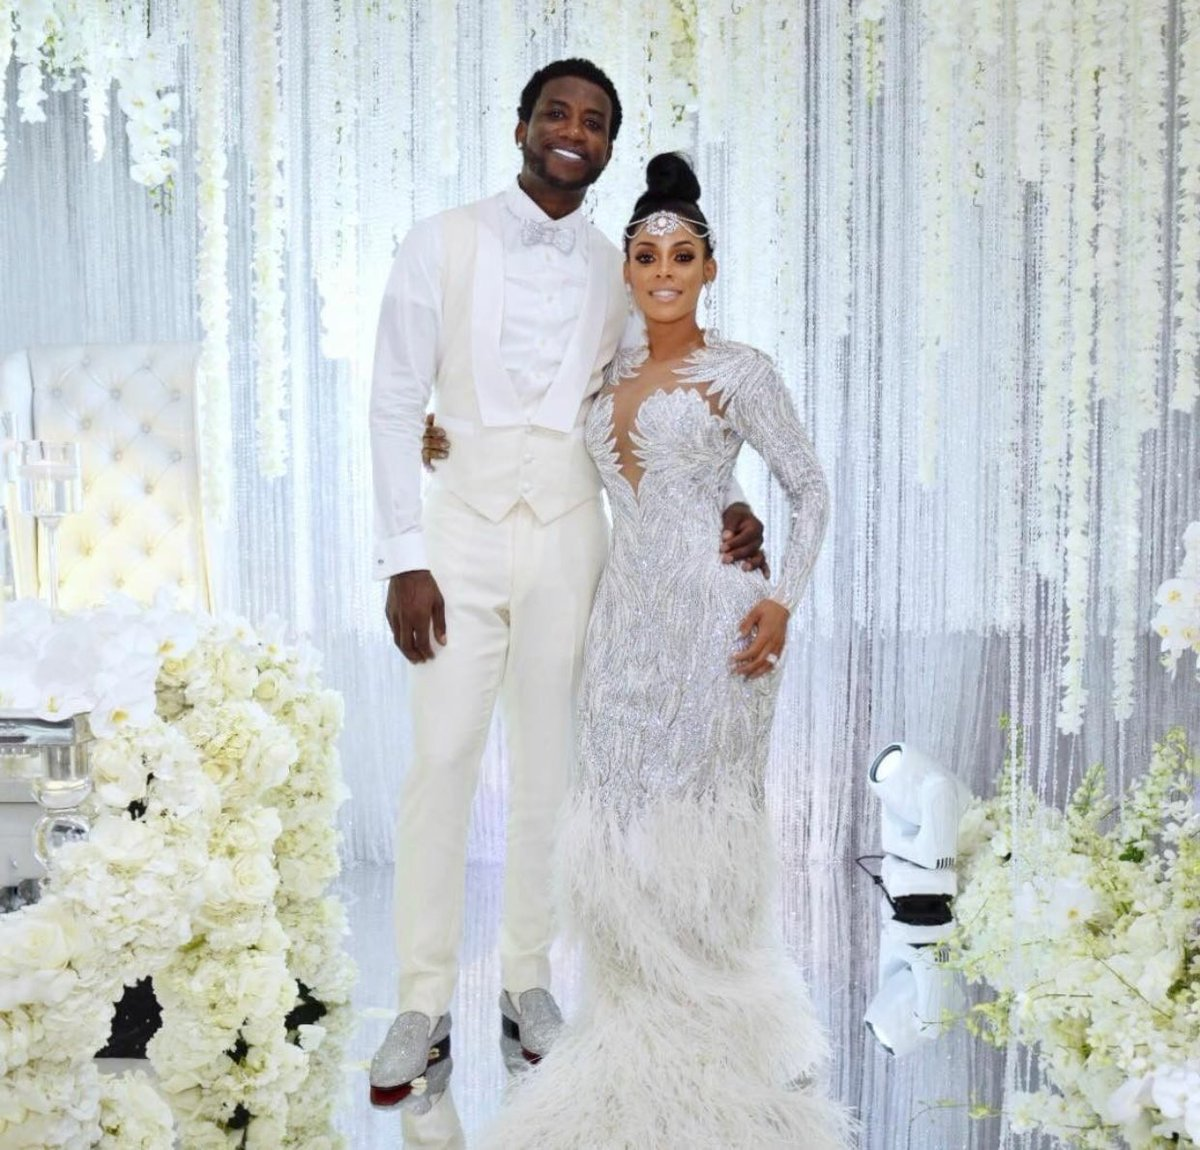 Fans watched Gucci Mane and Keyshia Ka\'oir get married 😍